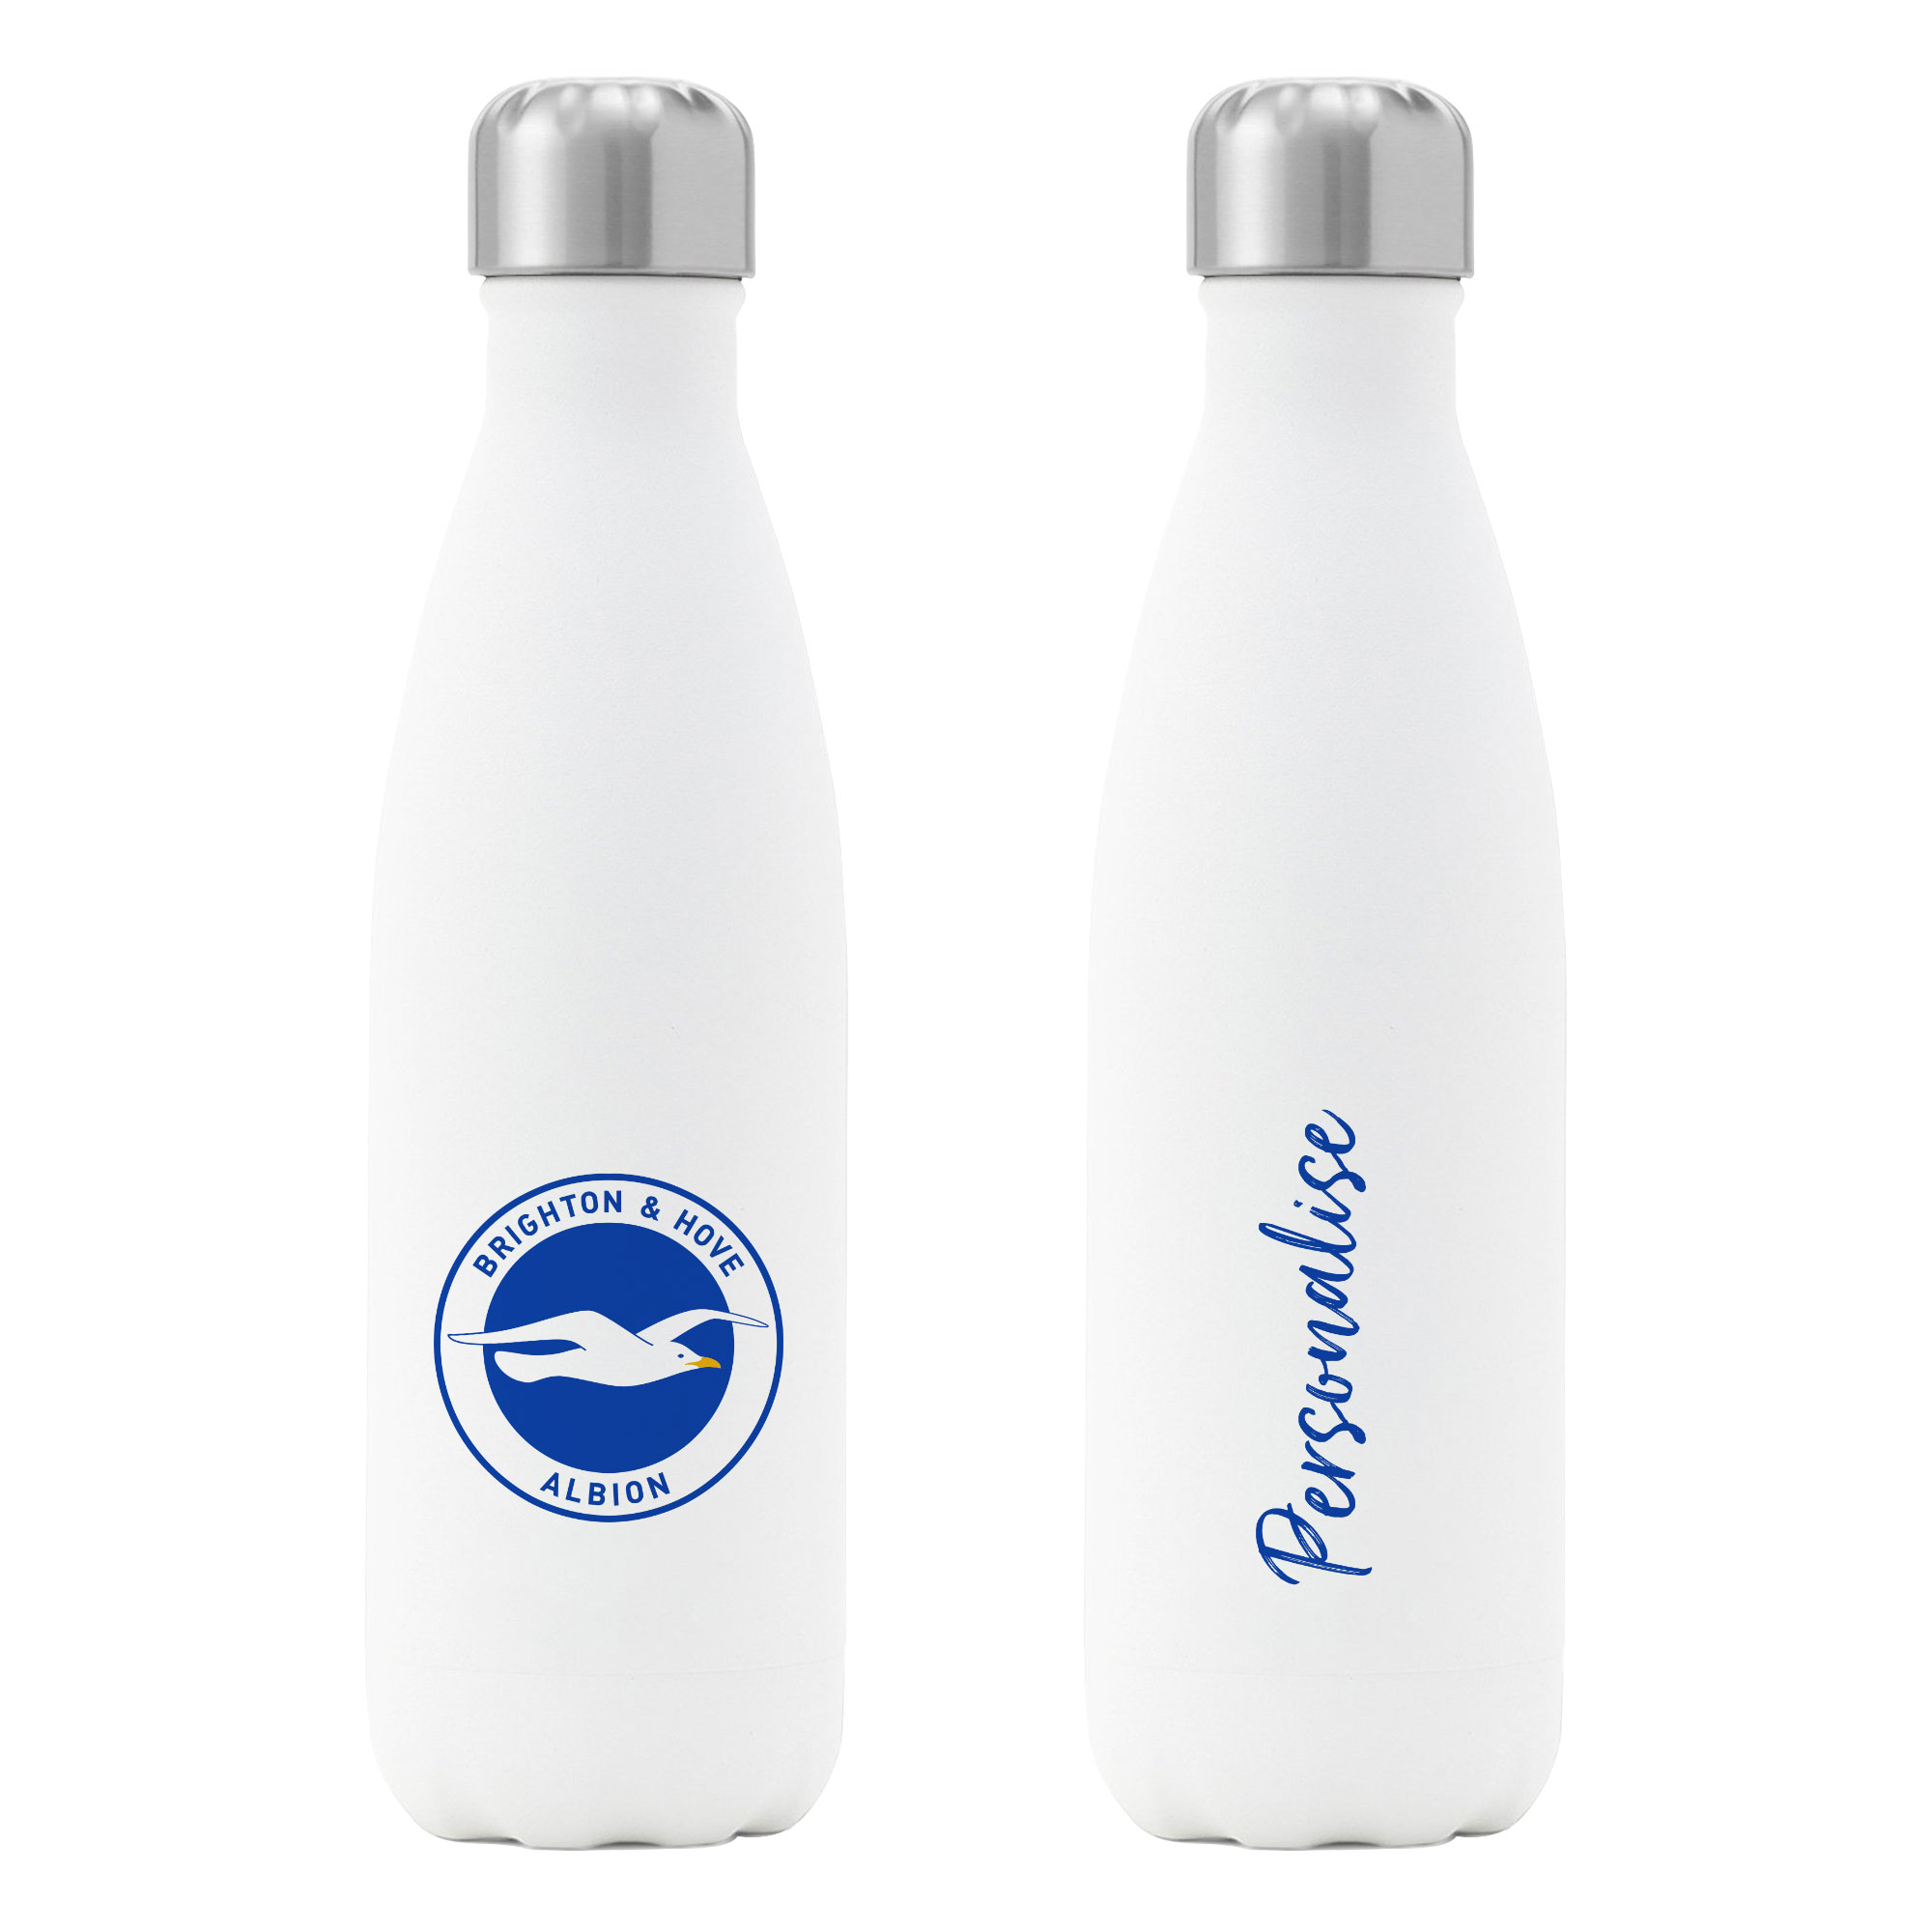 Brighton & Hove Albion FC Crest Insulated Water Bottle - White